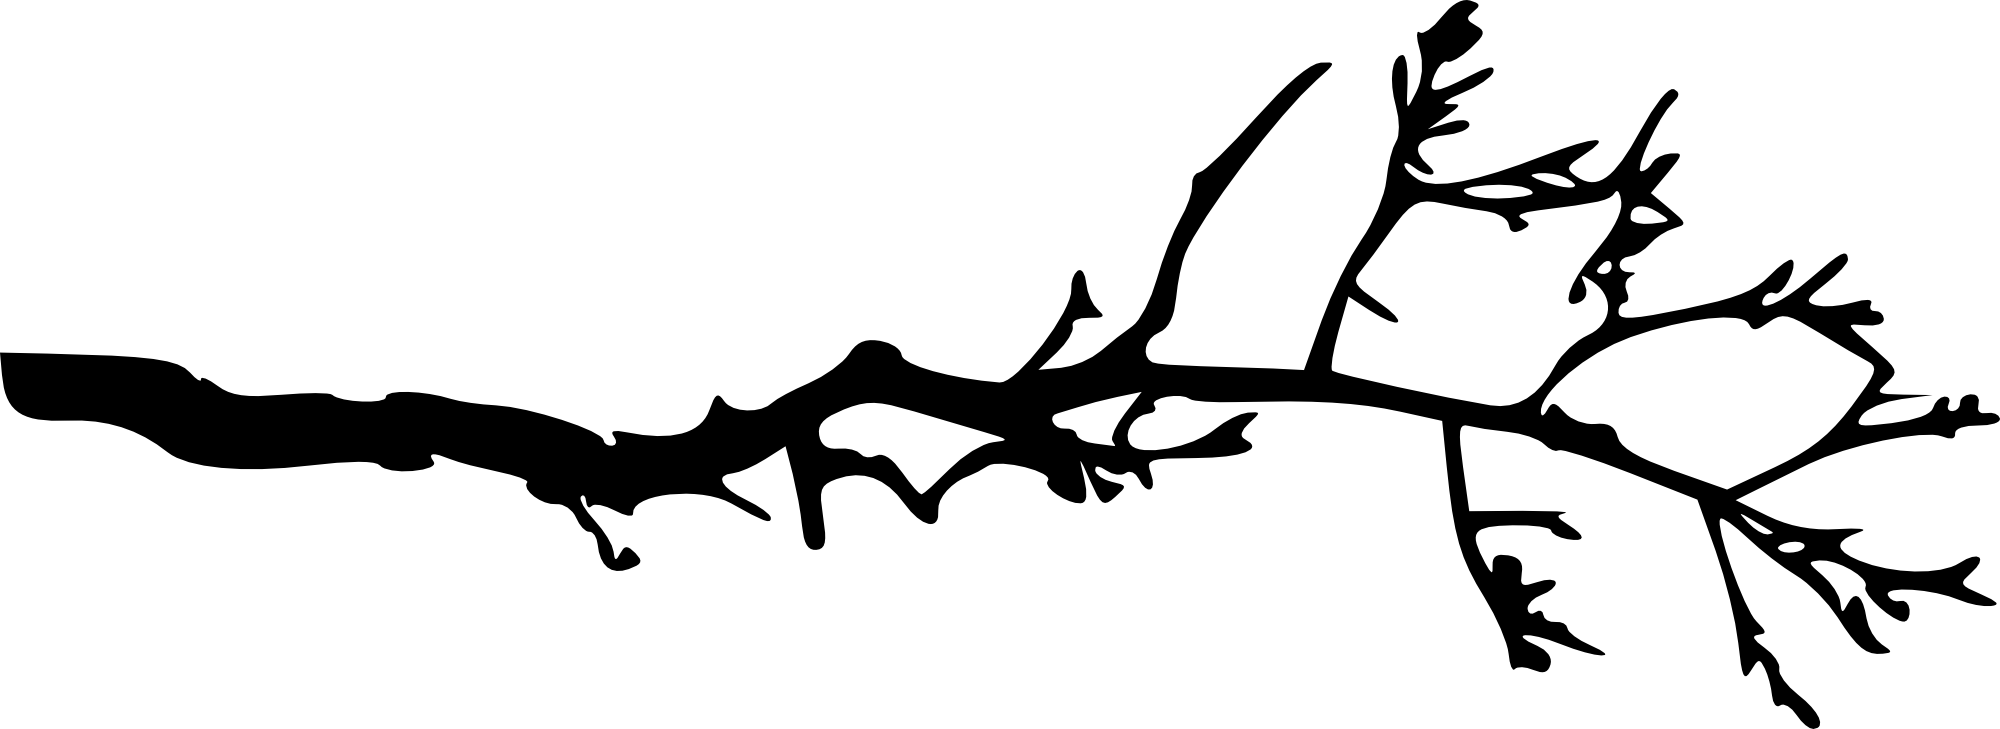 tree branch silhouette 15 tree branch silhouettes png transparent onlygfxcom tree silhouette branch